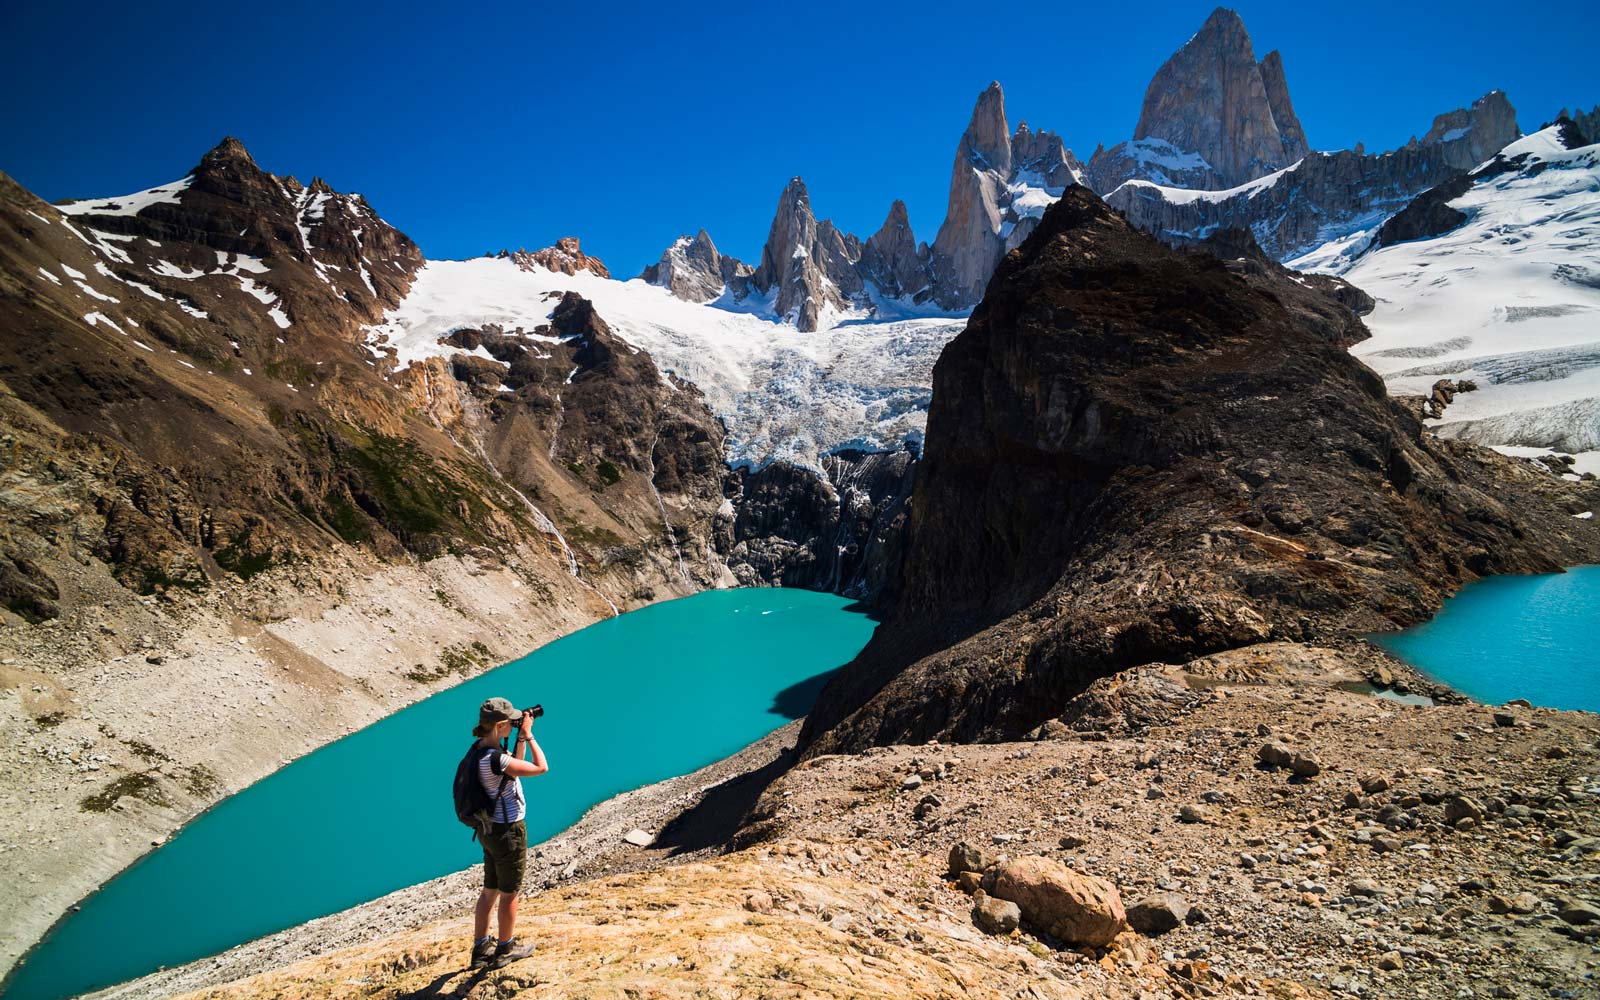 How to Make Thousands of Dollars Off Your Travel Photos